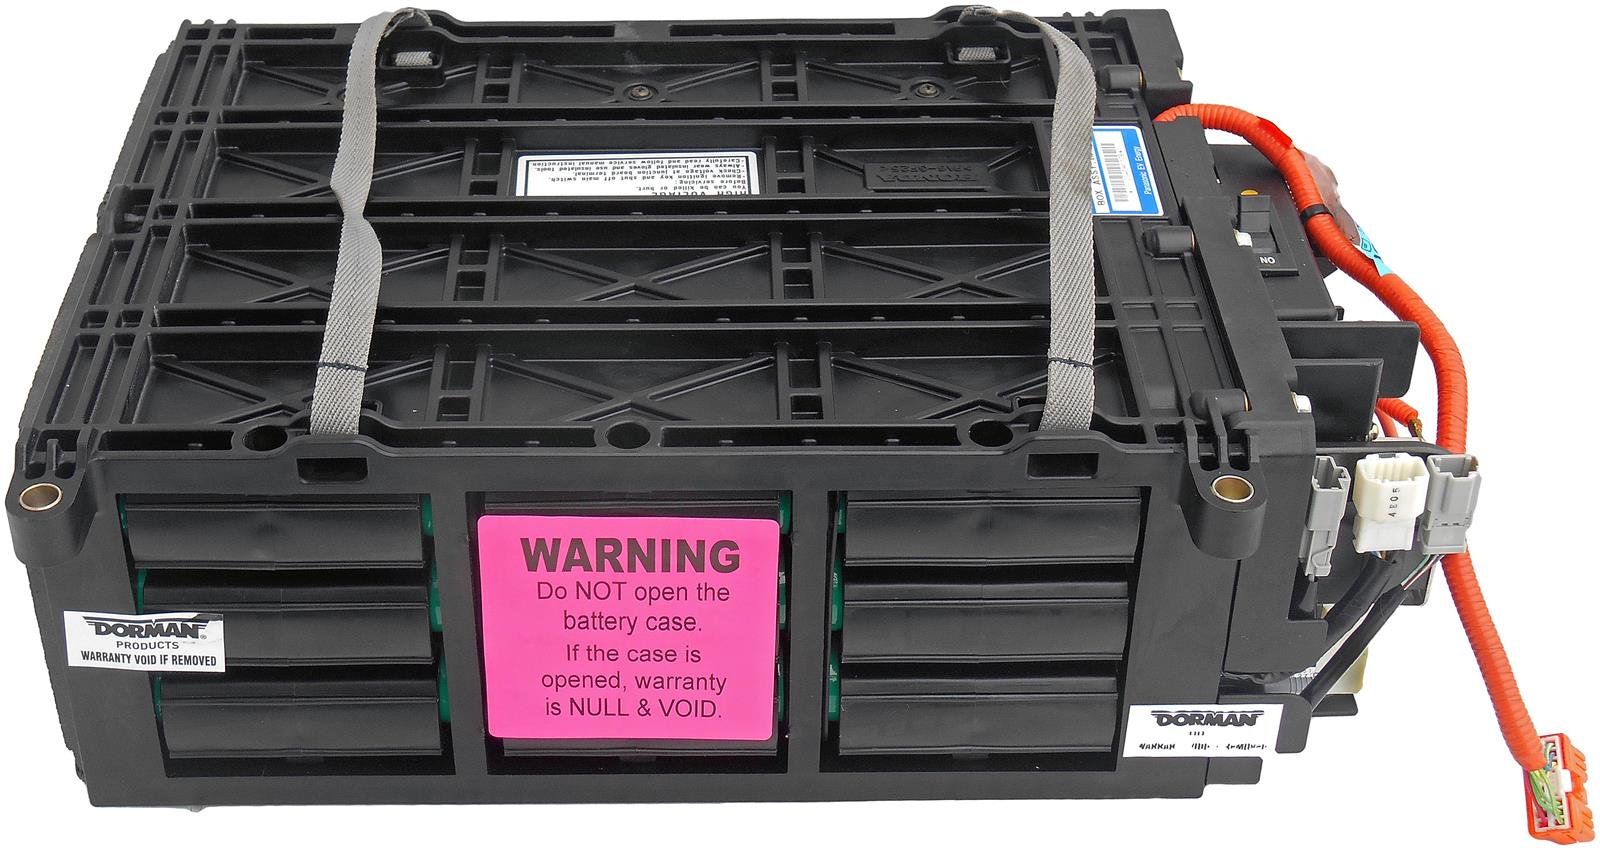 Honda Civic Dorman Hybrid Battery Packs 587 003 Free Shipping On Orders Over 99 At Summit Racing